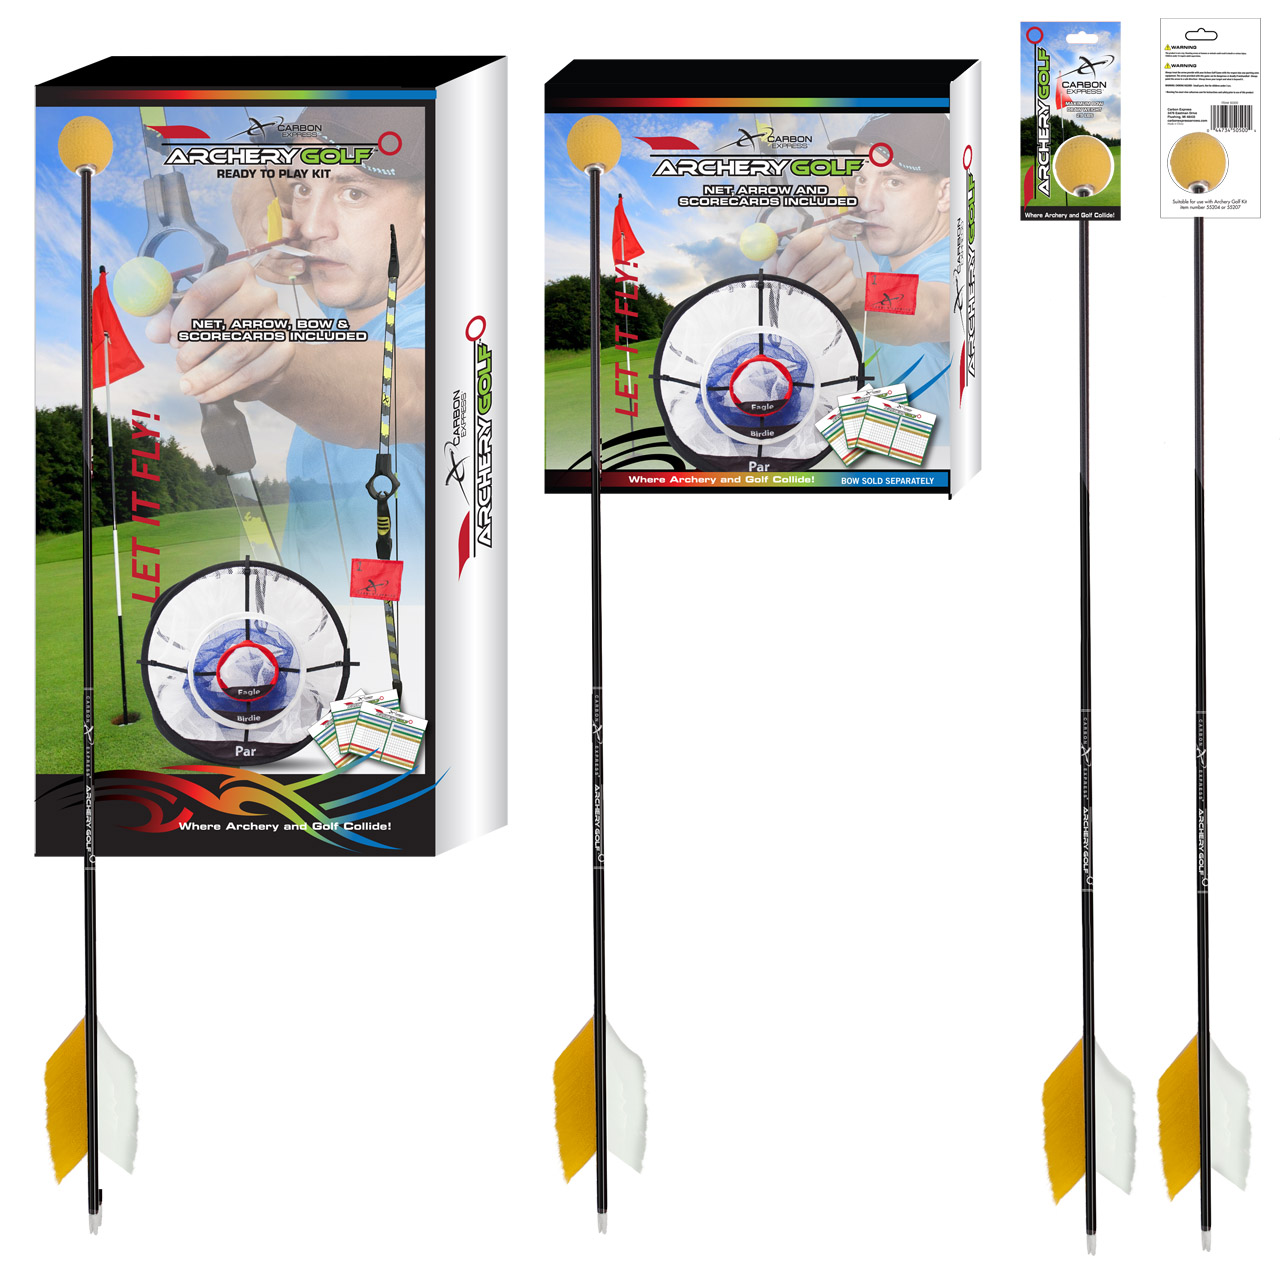 Carbon Express Eastman Outdoors Thunder Express II 26-Inch Youth Arrows